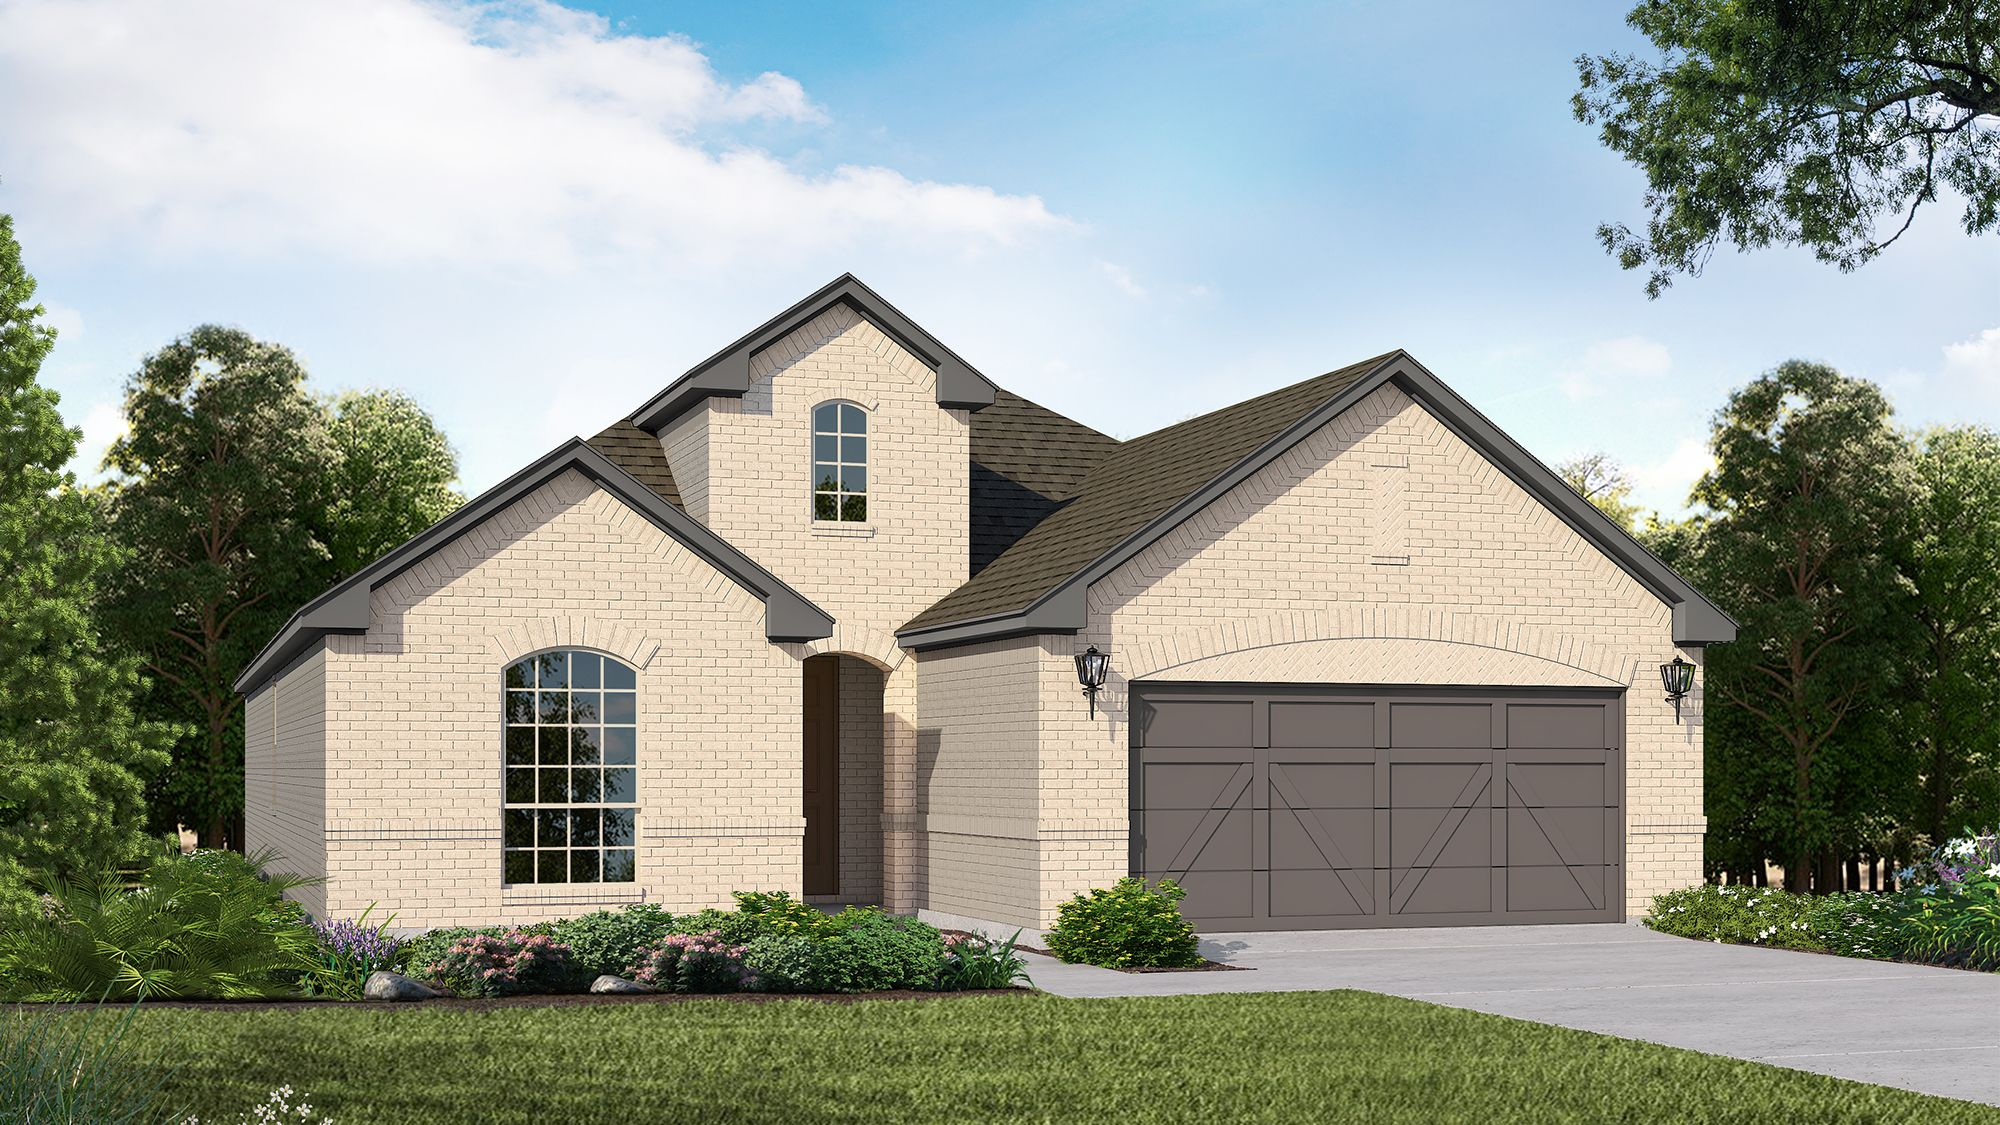 Plan 1520 Elevation A by American Legend Homes